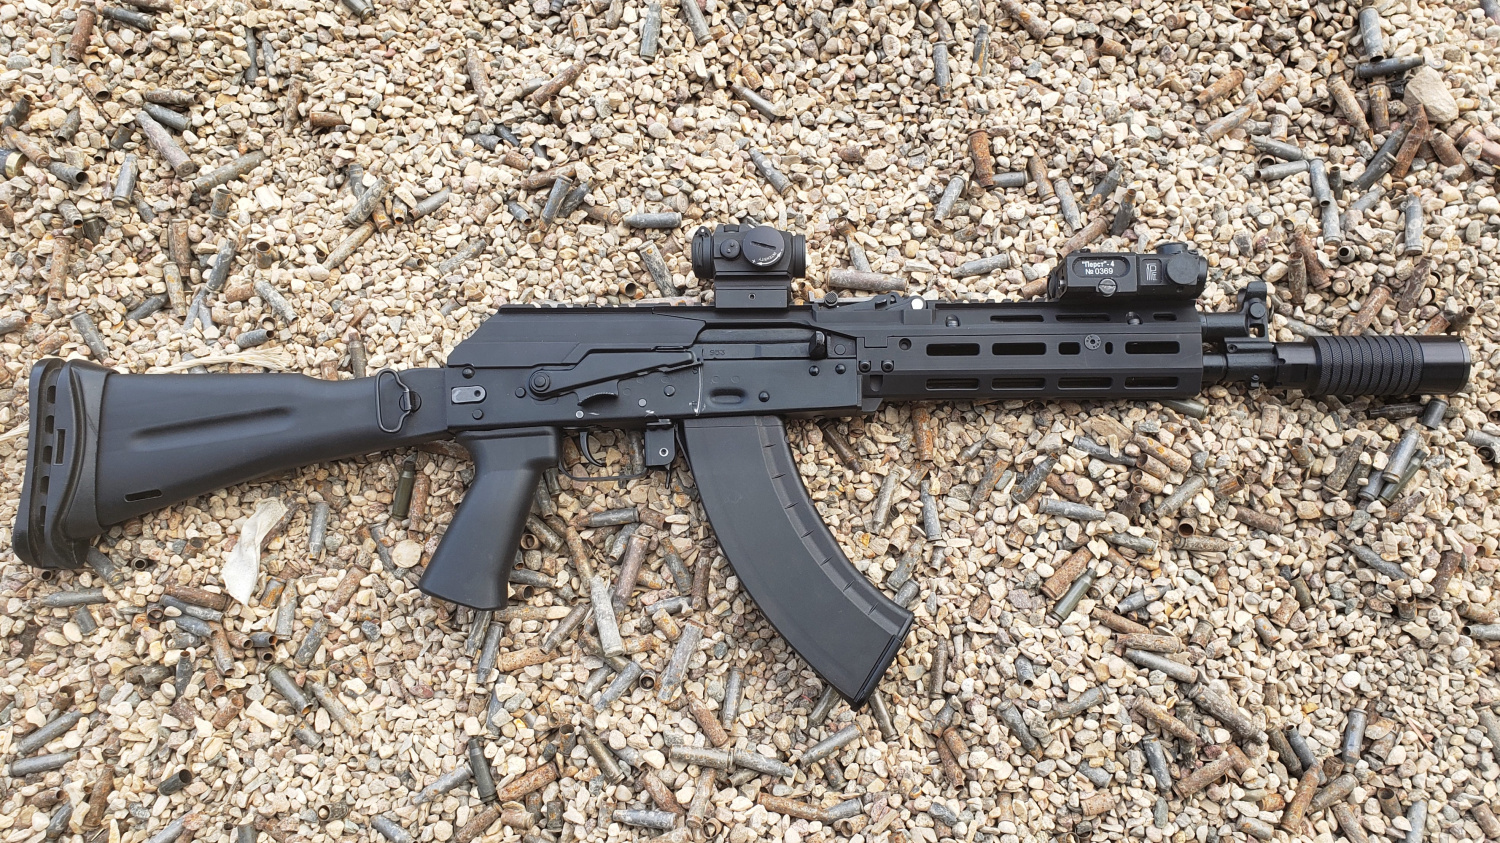 Author's personal AK carbine with Sureshot Armament MK3 Chassis